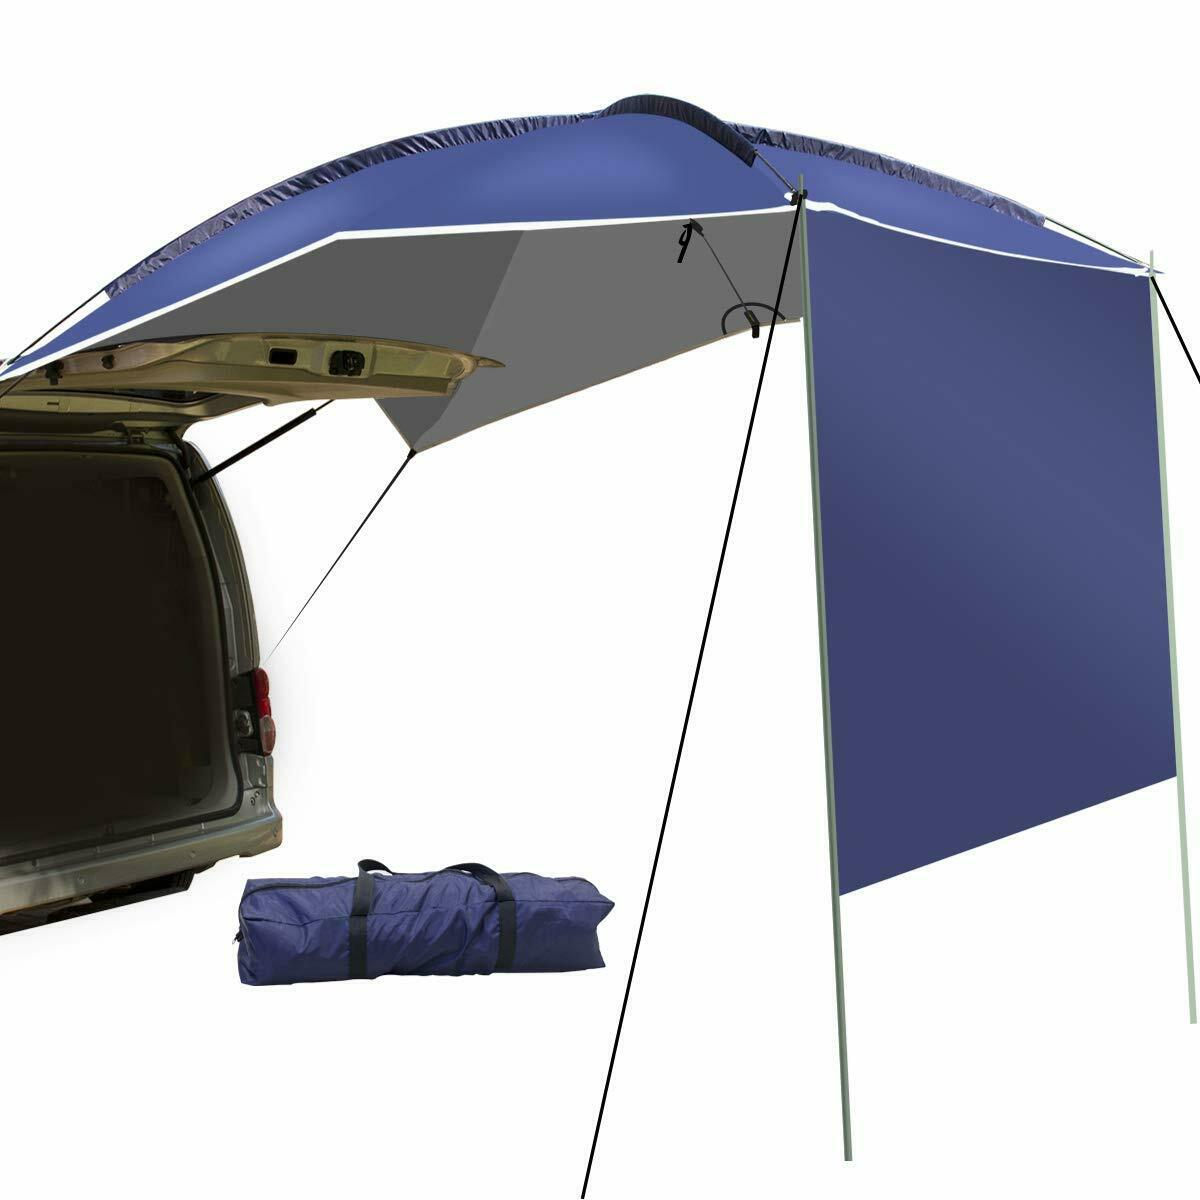 Awning Sun Shelter SUV Waterproof Auto Canopy Camper Trailer Tent Roof Top